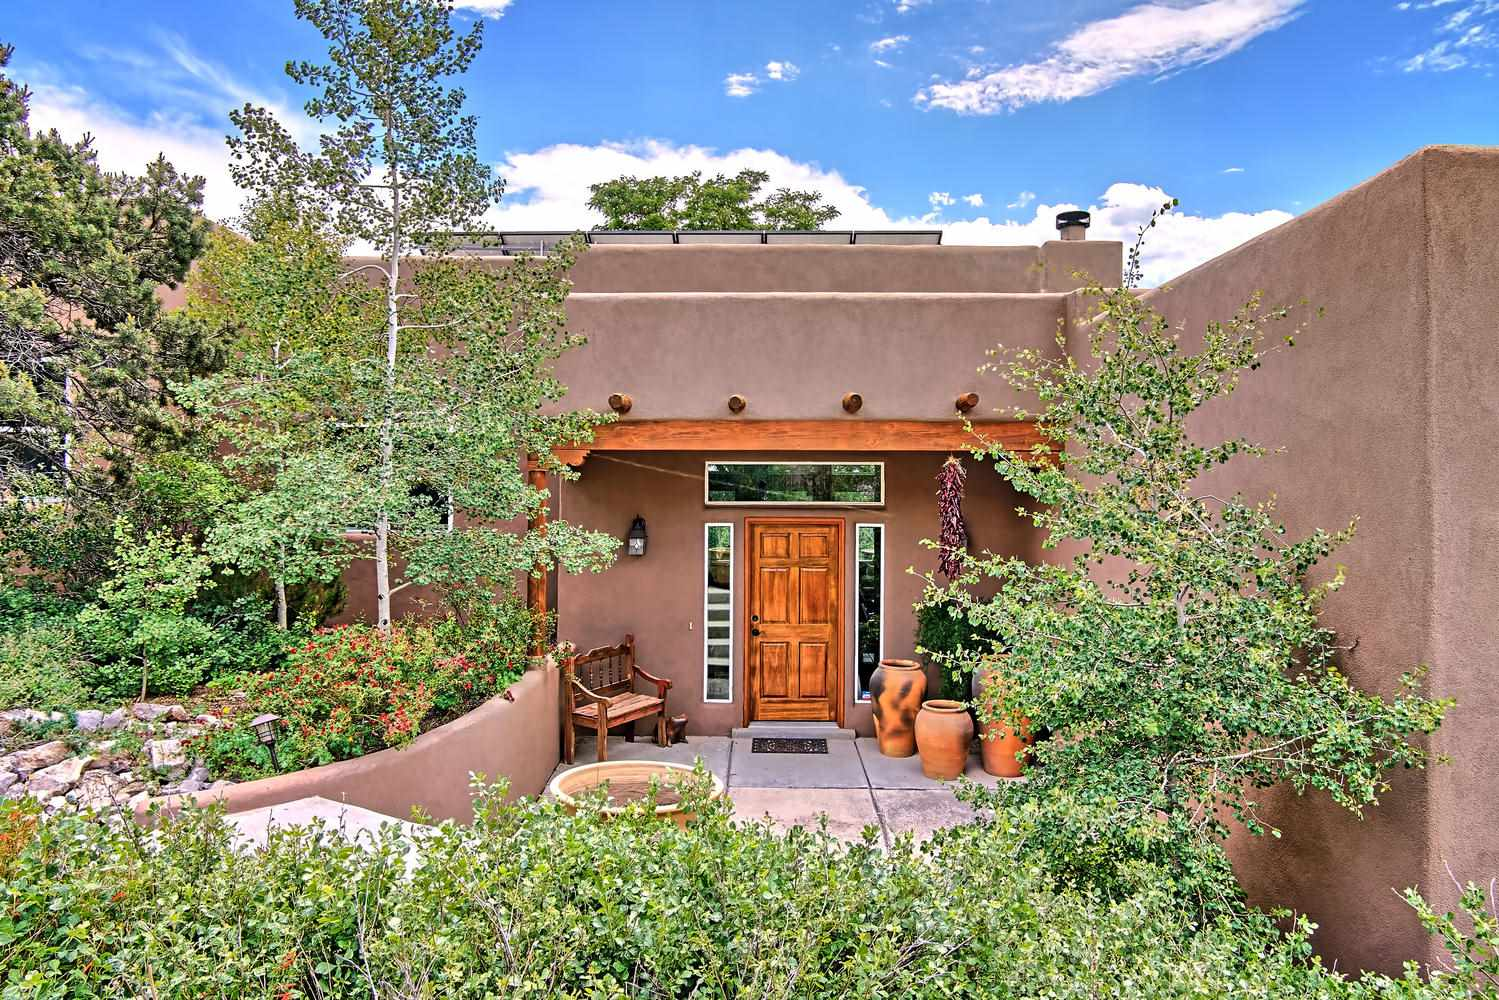 Thoughtfully planned to capture breathtaking Sandia Mountain vistas, this well-appointed Santa Fe-style home was custom built to reflect a warm, relaxing mountain ambience. Split-level design hugs the lay of the land and offers amenities galore*4 private outdoor living spaces*extensive gardens with a starburst of colorful flowers and shrubs plus their own quaint potting shed*Large windows, amazing light*Chef's-delight kitchen*Spacious sun-filled living area w/custom corner fireplace, raised tongue and groove ceilings*2205 heated sf detached workshop and studio is a perfect setting for a home-based business, telecommuting via high-speed communications, or a haven for creative pursuits*Newer, owned solar system*Experience Nature, peace of mind, and serenity. A slice of heaven.